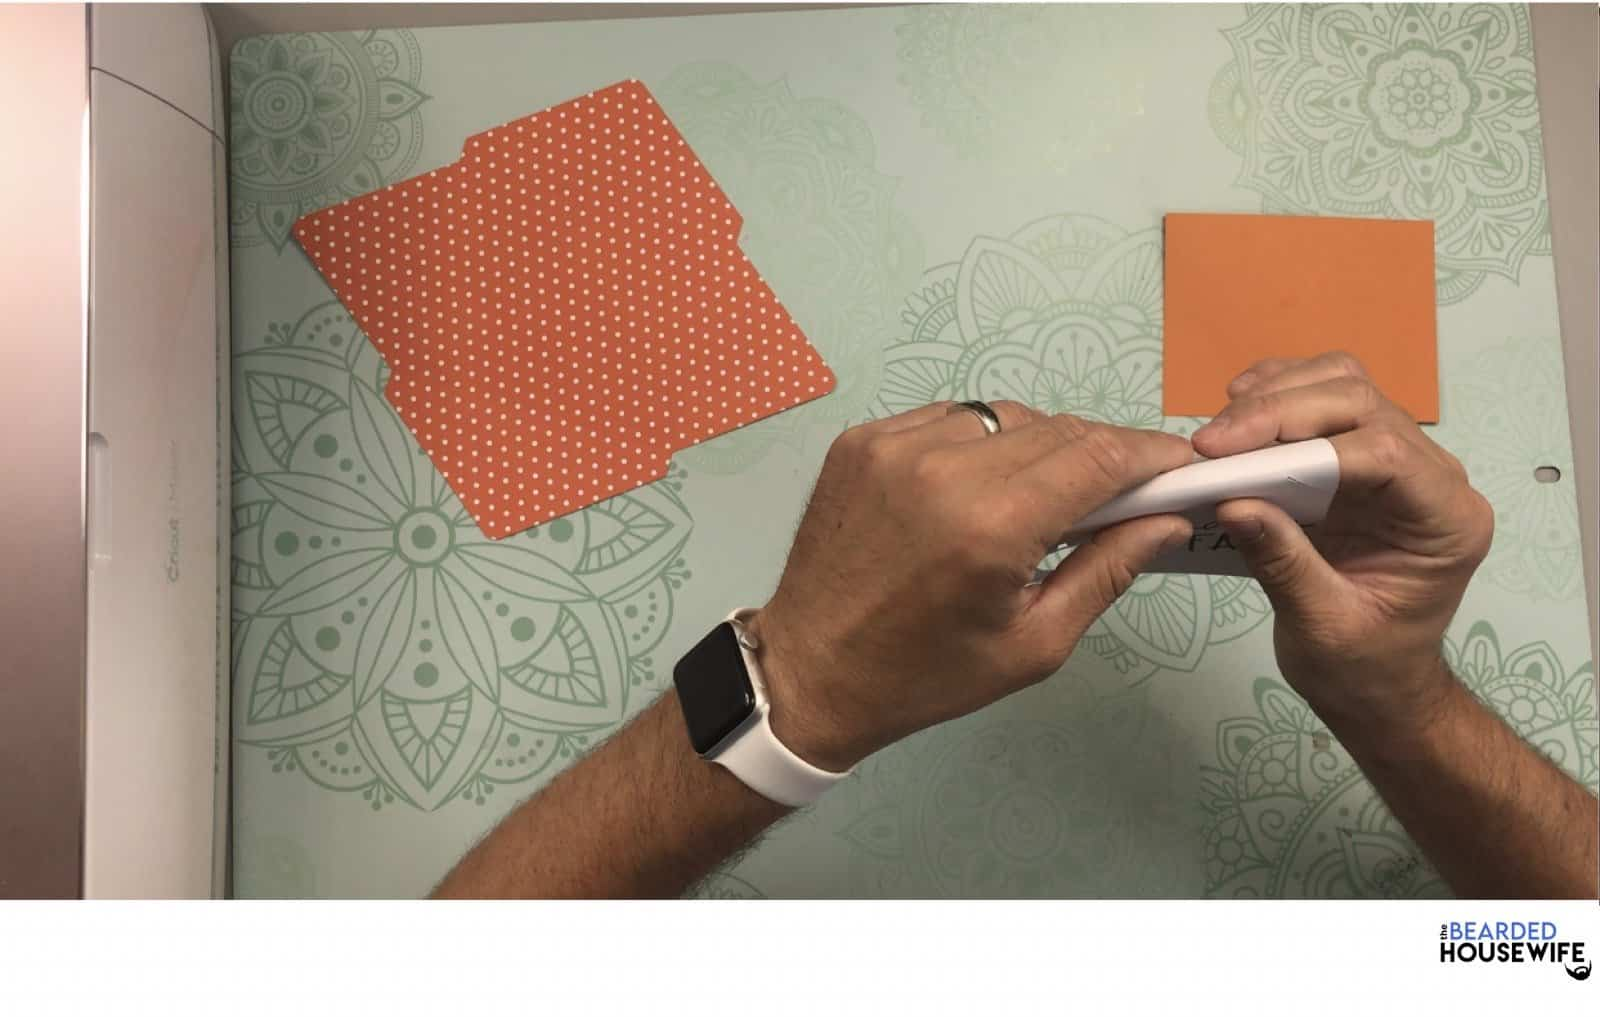 begin by folding the card along the score line